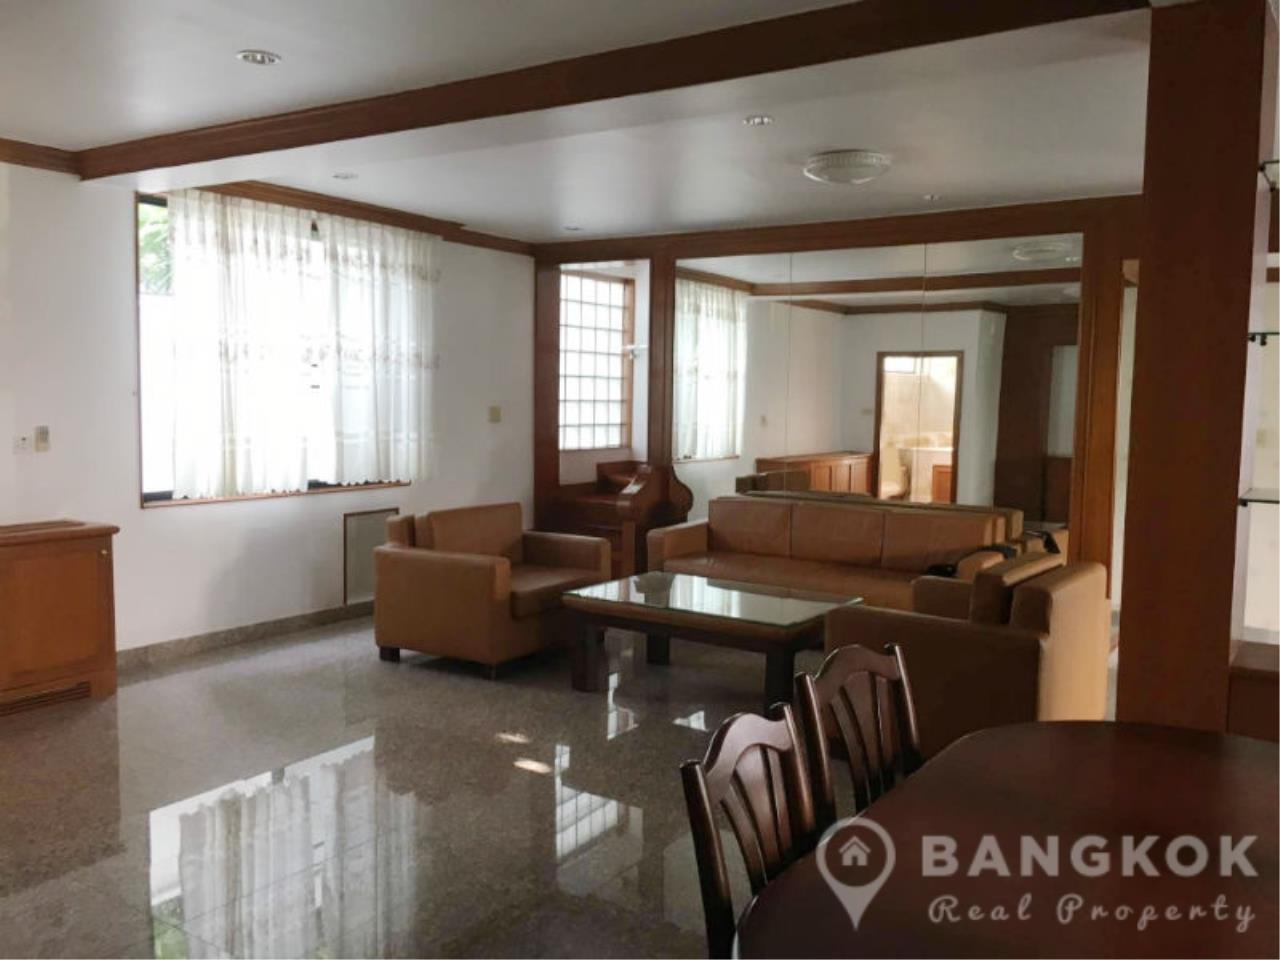 Bangkok Real Property Agency's Detached Spacious 3 + 1 Bed 3 Bath house with Garden in Nana  4